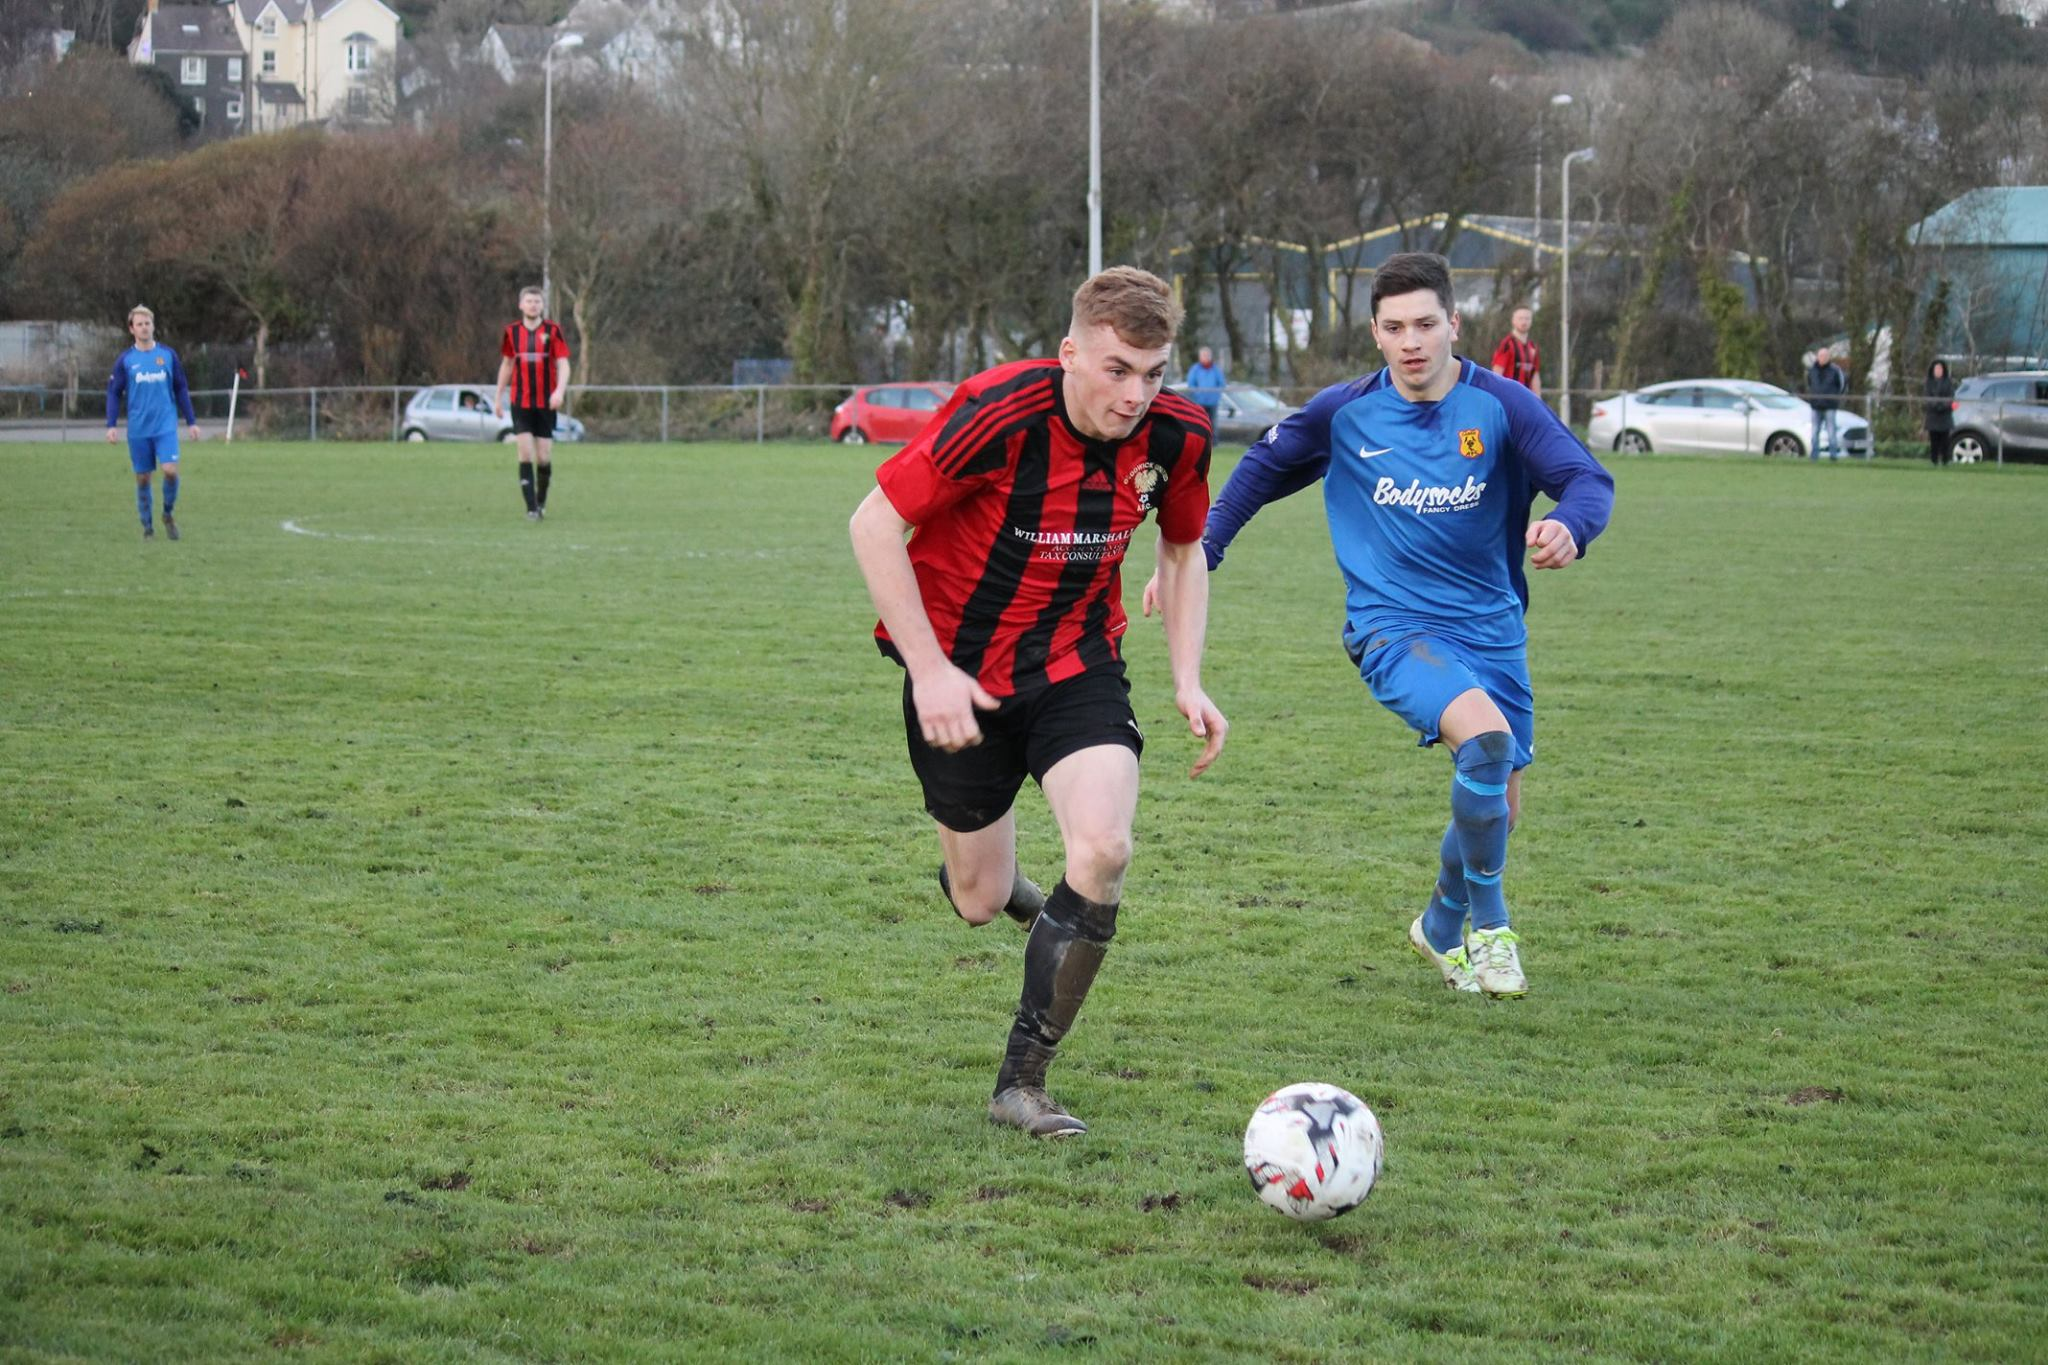 Goodwick host CRC Rangers after beating Carew last week. PICTURE: Andrew Butler.